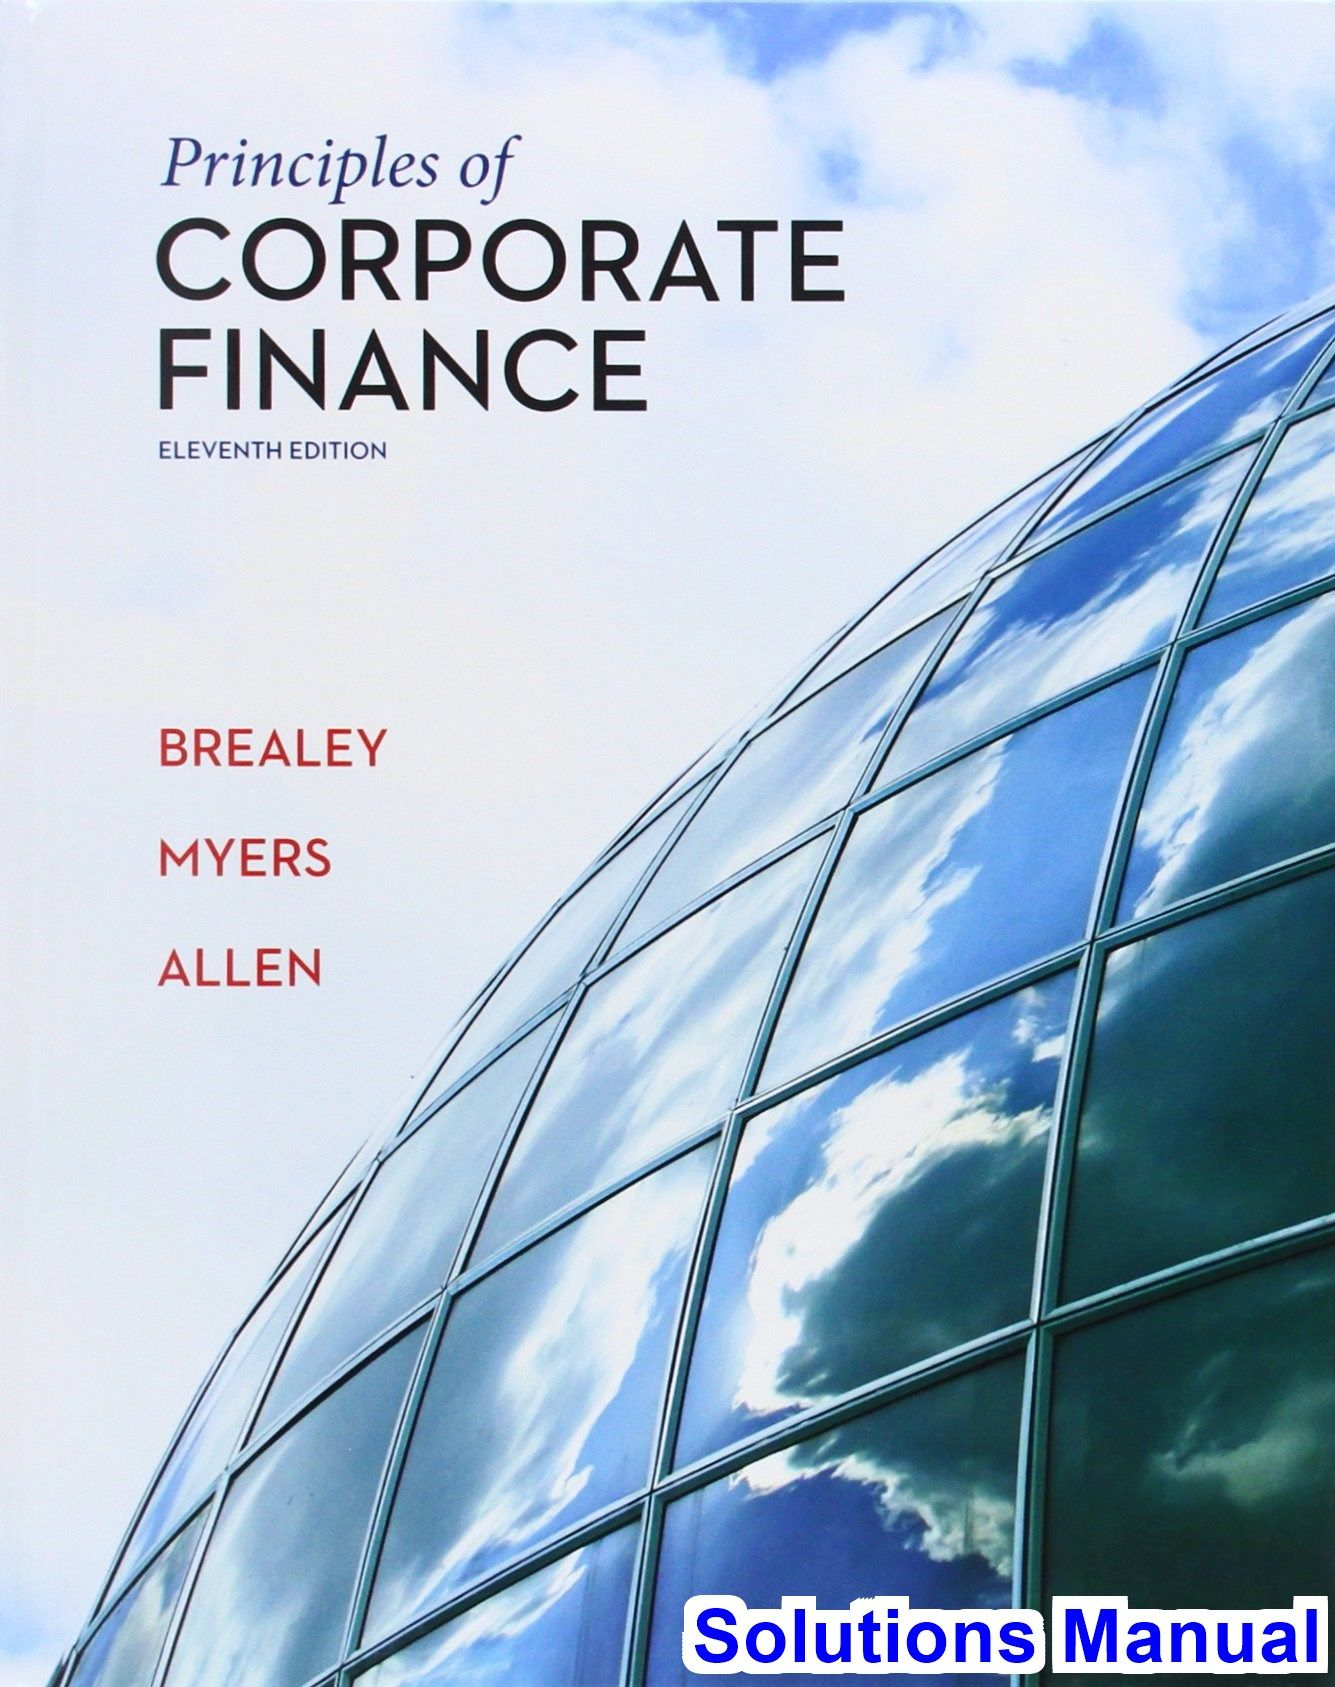 Solutions Manual for Principles of Corporate Finance 11th Edition by Brealey